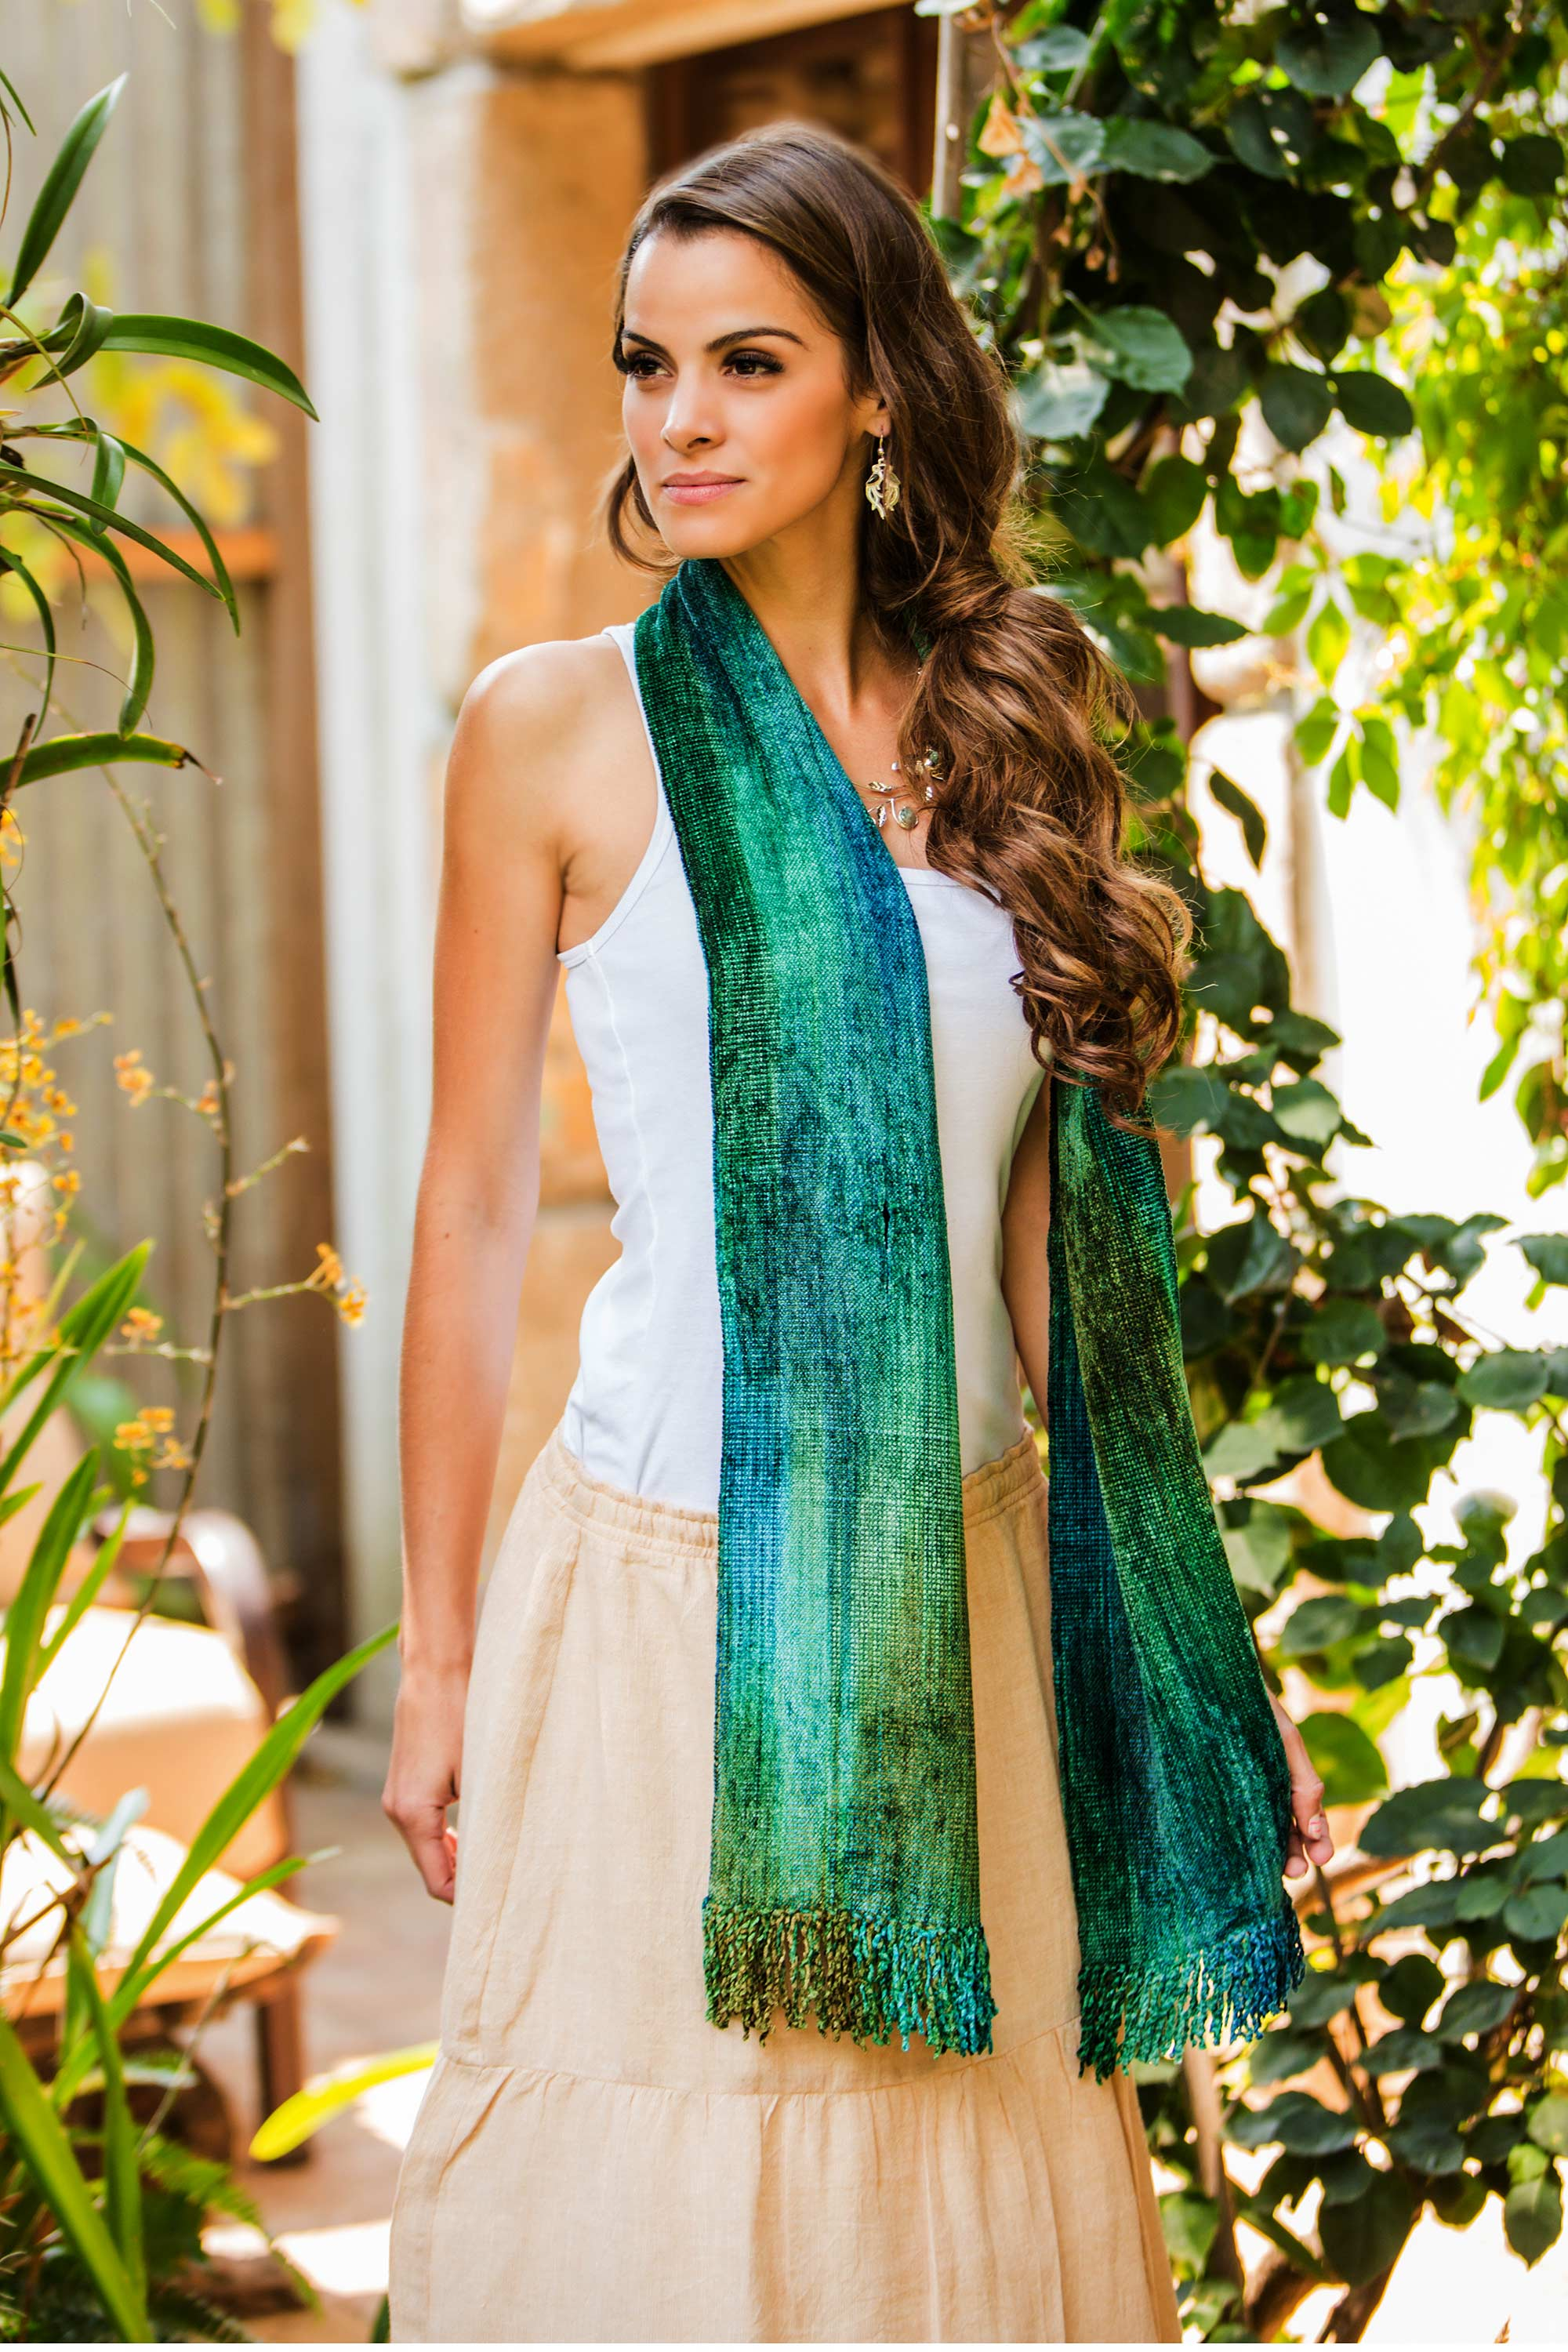 Handcrafted Cotton Blend Scarf, 'Emerald Dreamer' Scarf and Shawl Styles for fall